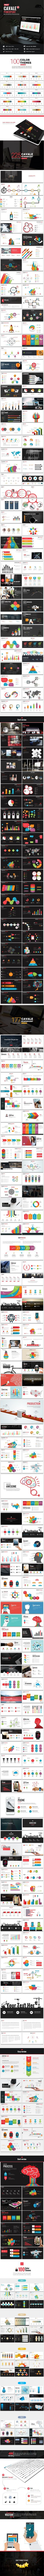 Cavale - Multipurpose Powerpoint Template  - PPTX • Only available here ➝ http://graphicriver.net/item/cavale-multipurpose-powerpoint-template/9928417?ref=pxcr